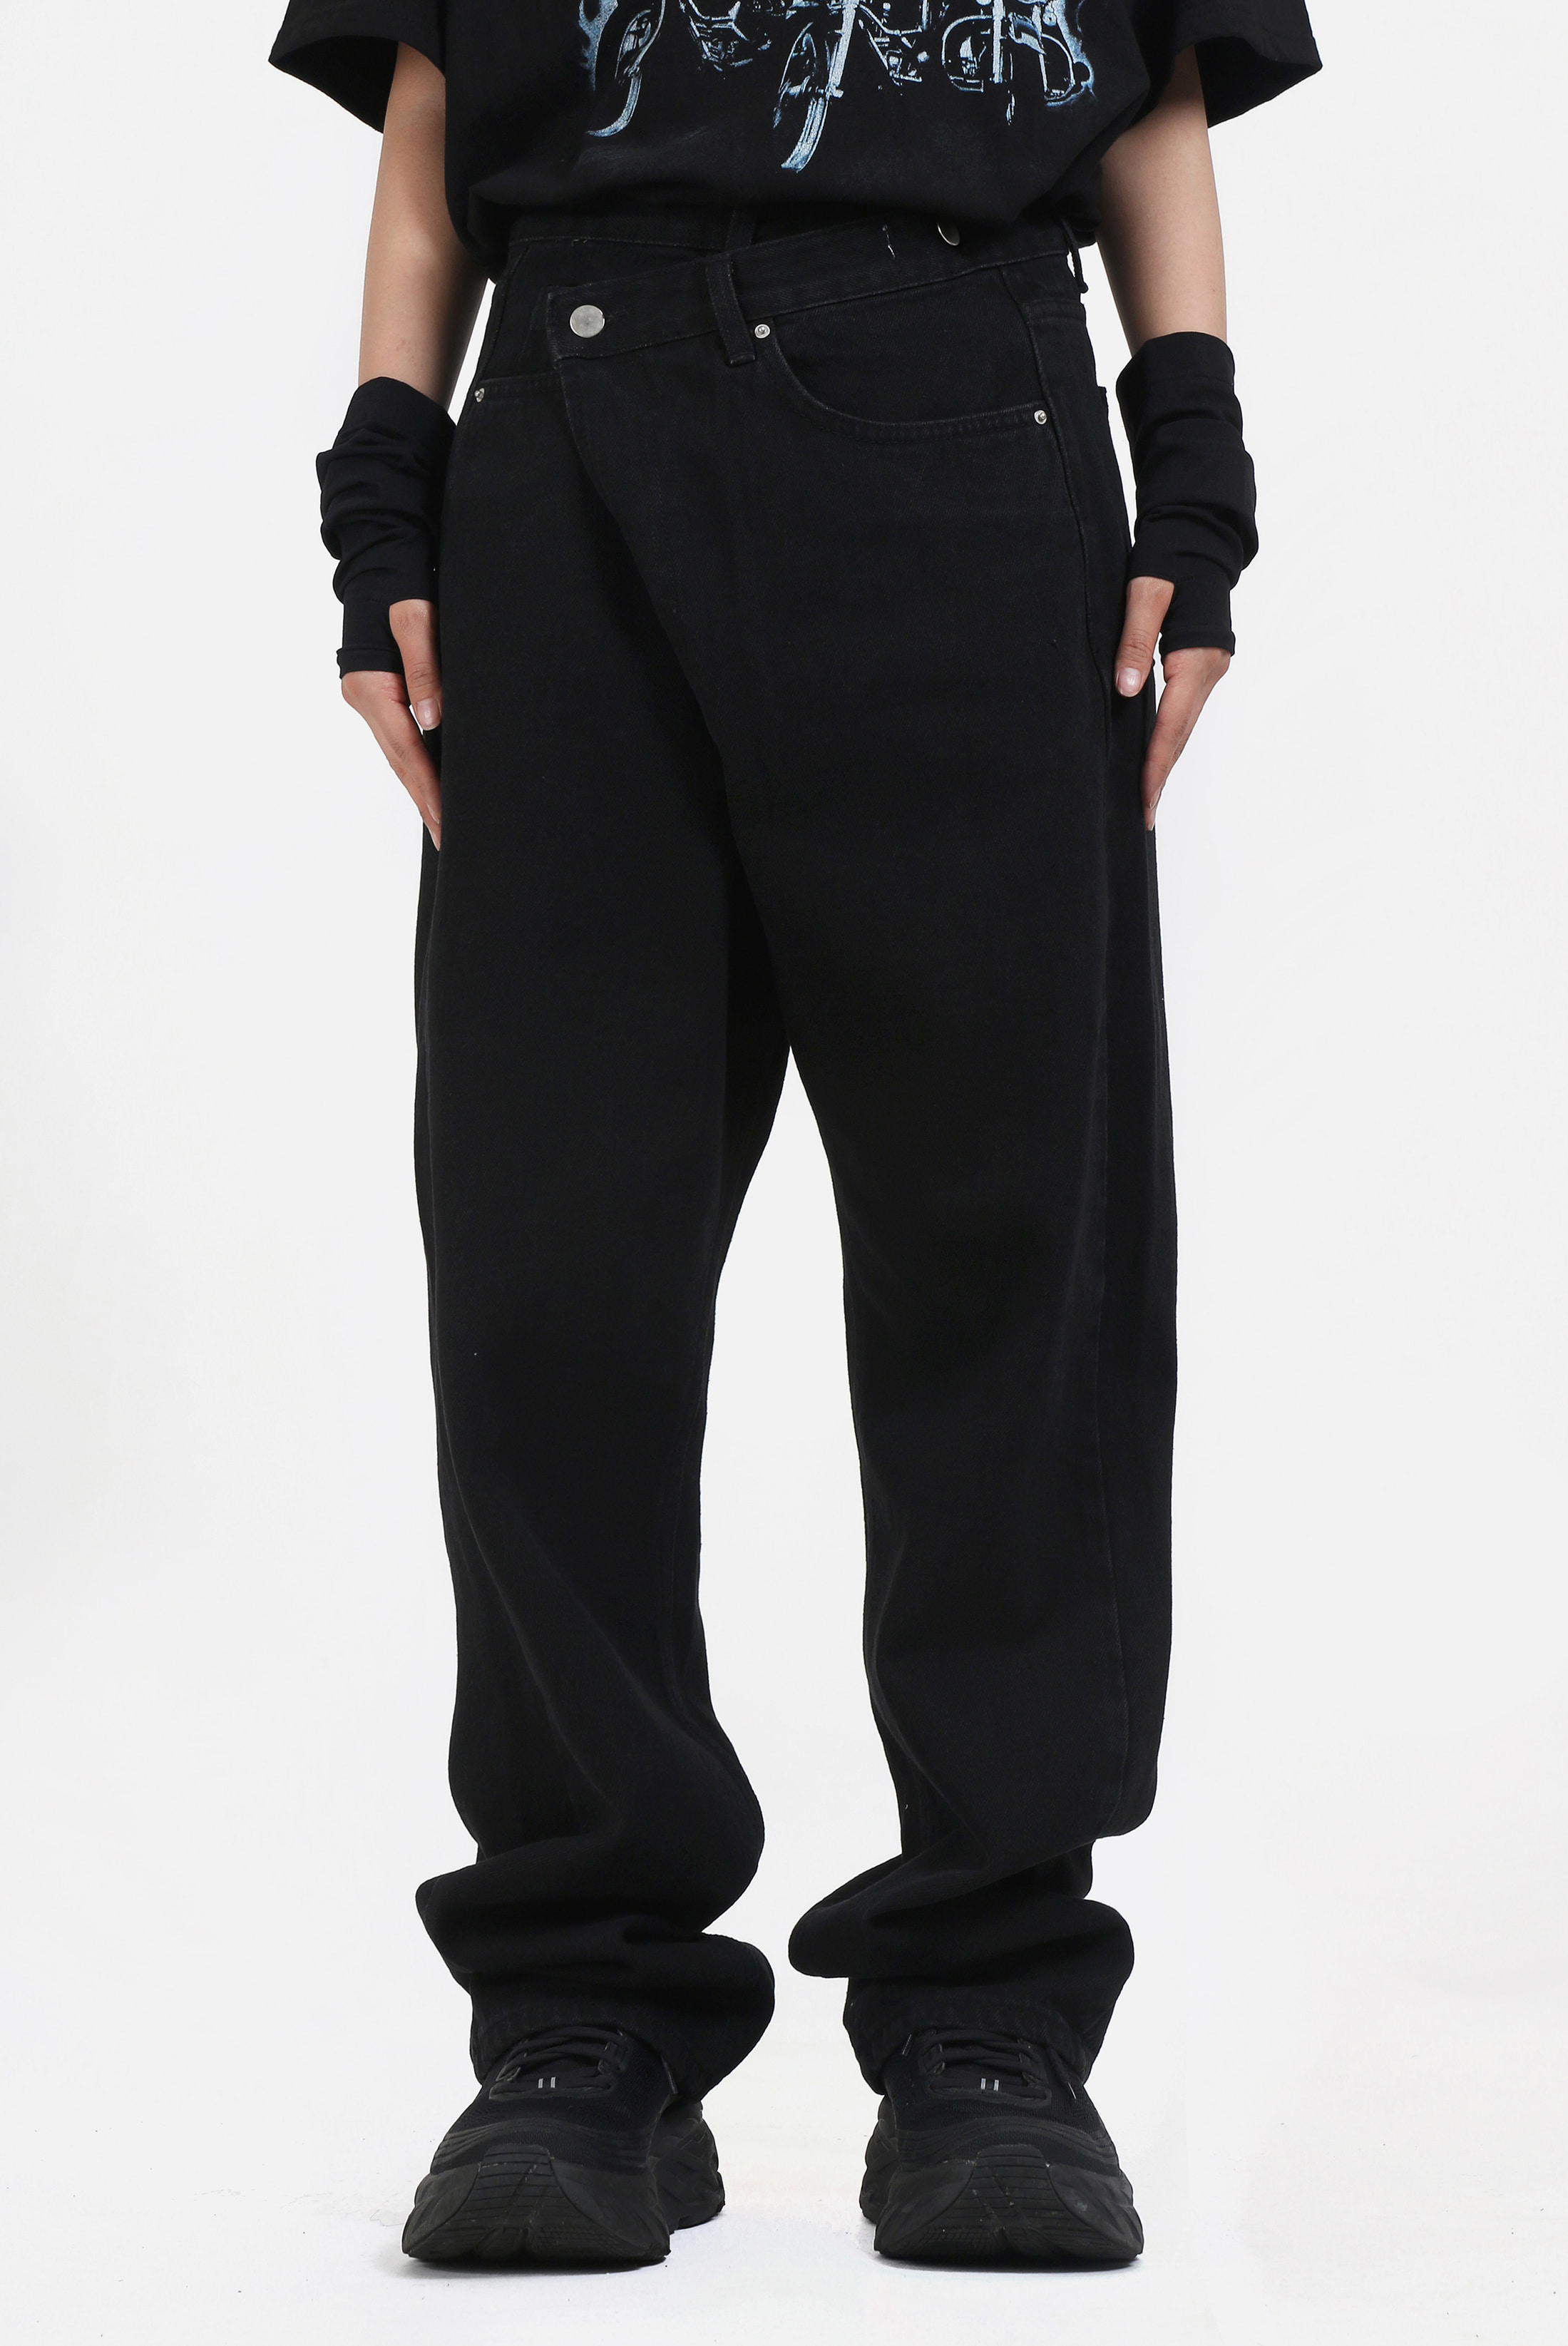 (W) Unblance_Wrap Black Pants